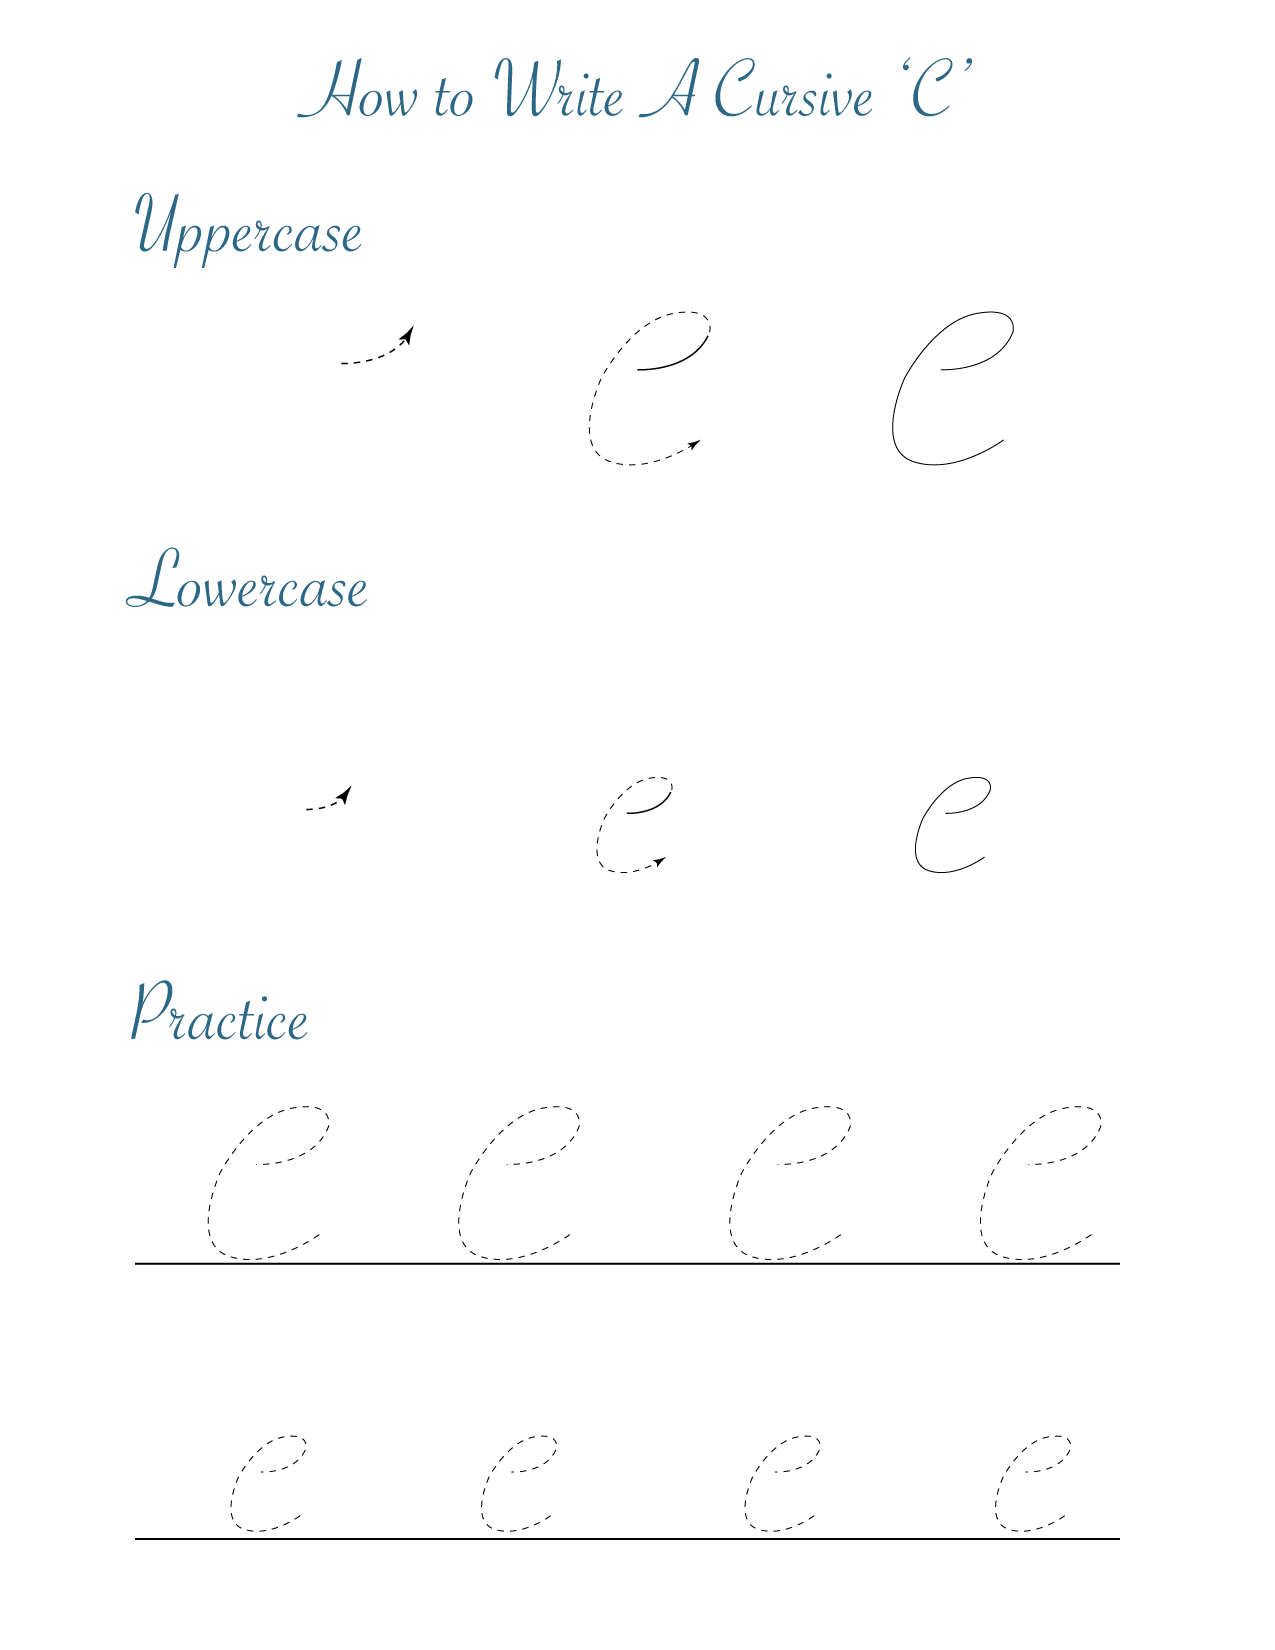 How to write a cursive 'c'